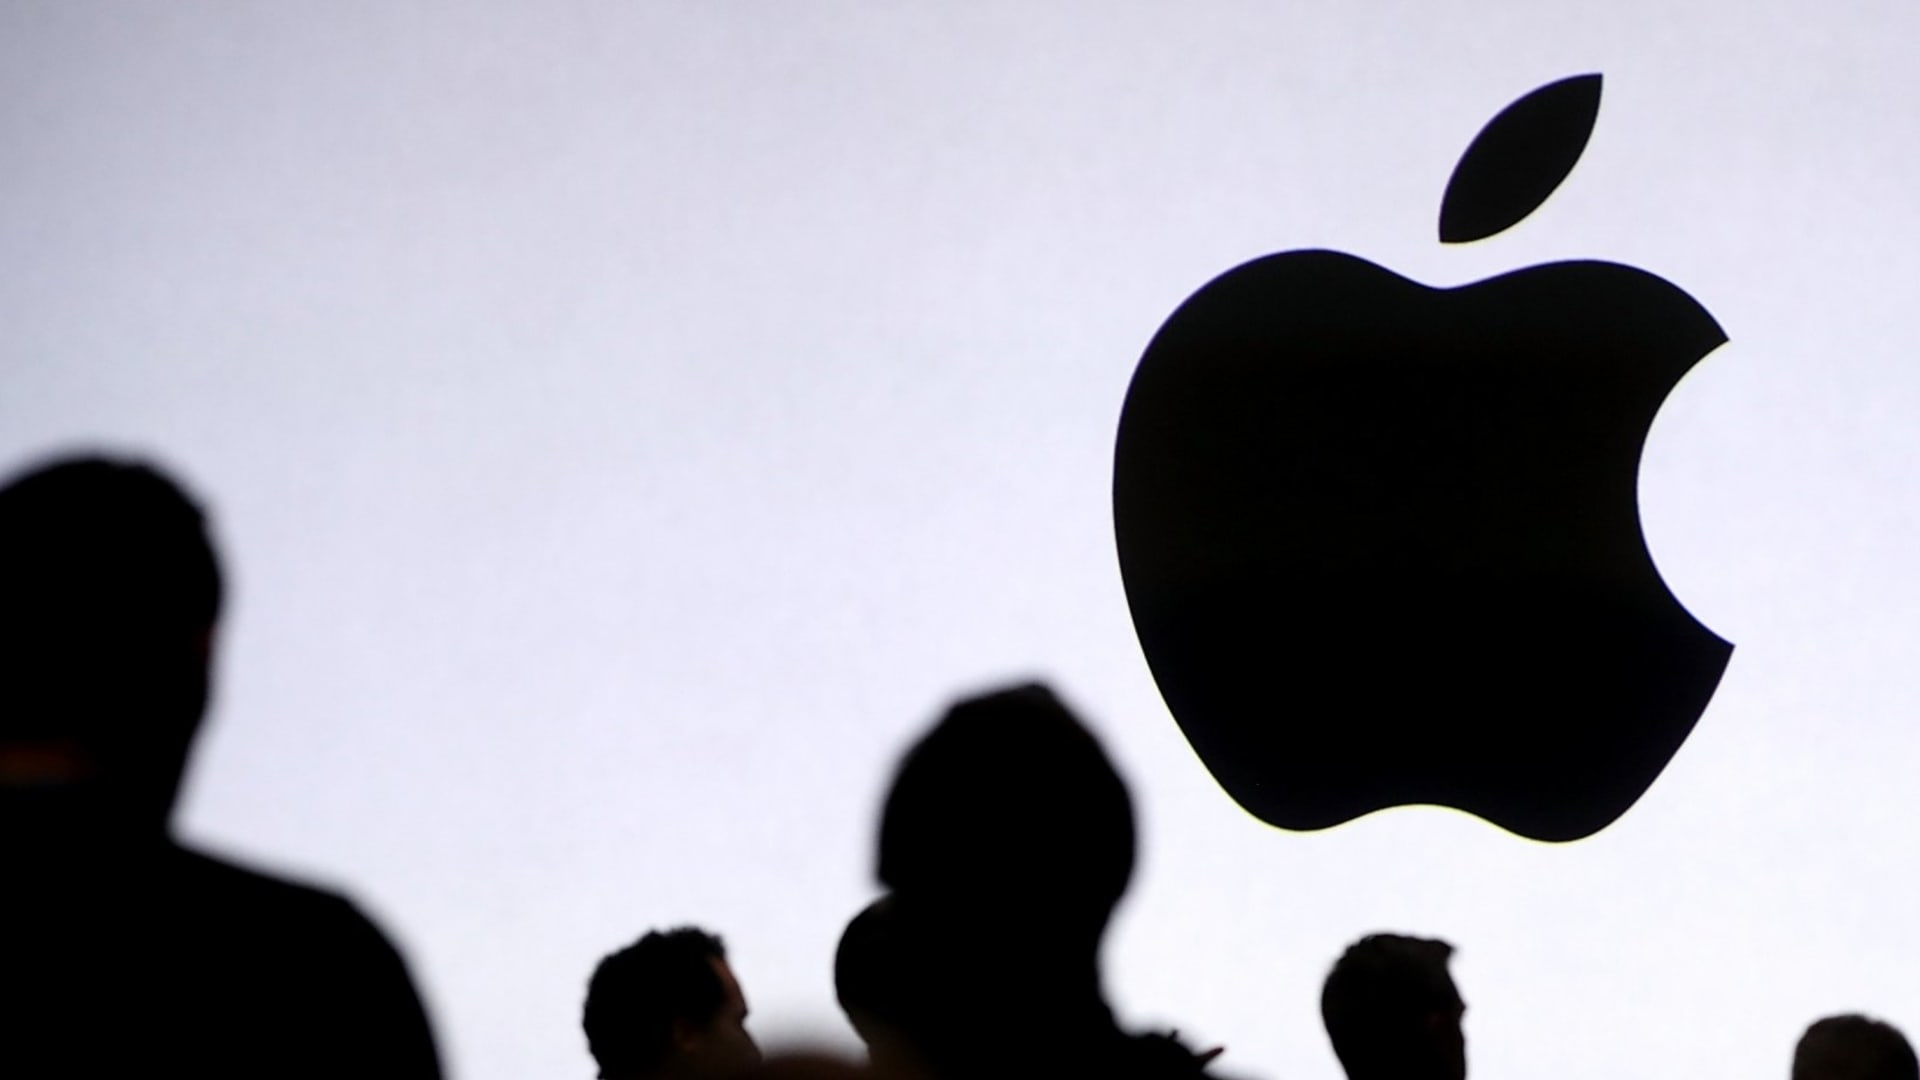 5 Things to Expect This Week at Apple's WWDC 2020